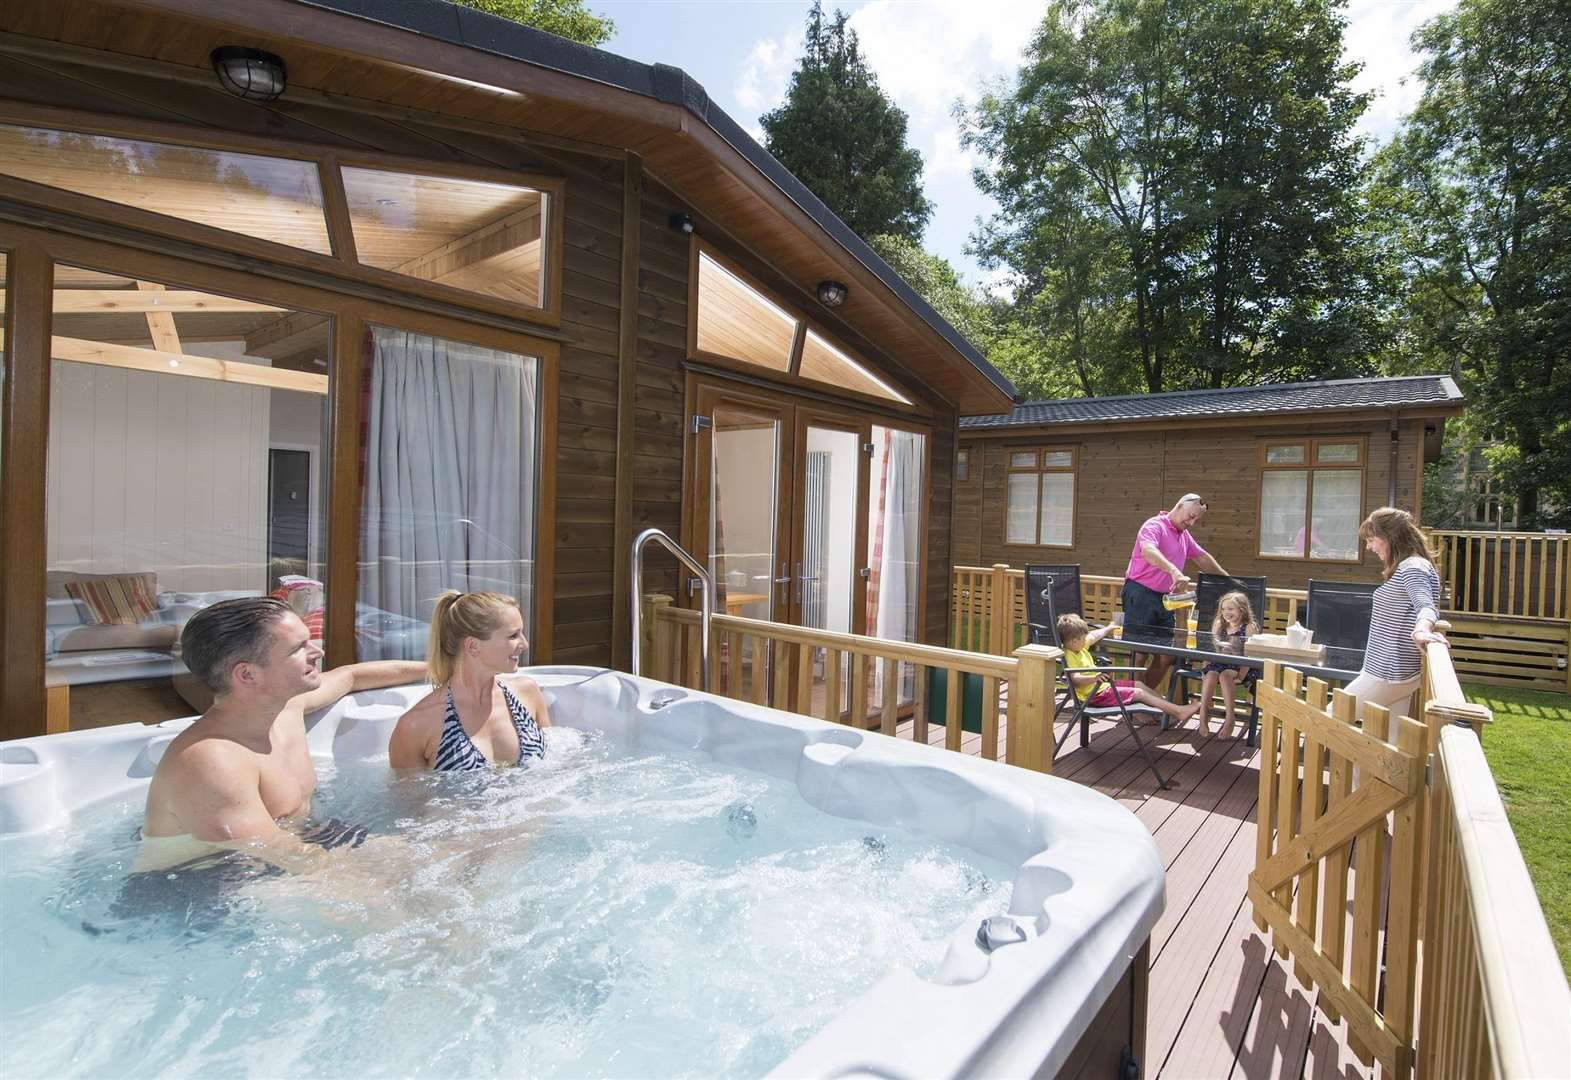 Holiday park firm to invest £1.4m into key sites